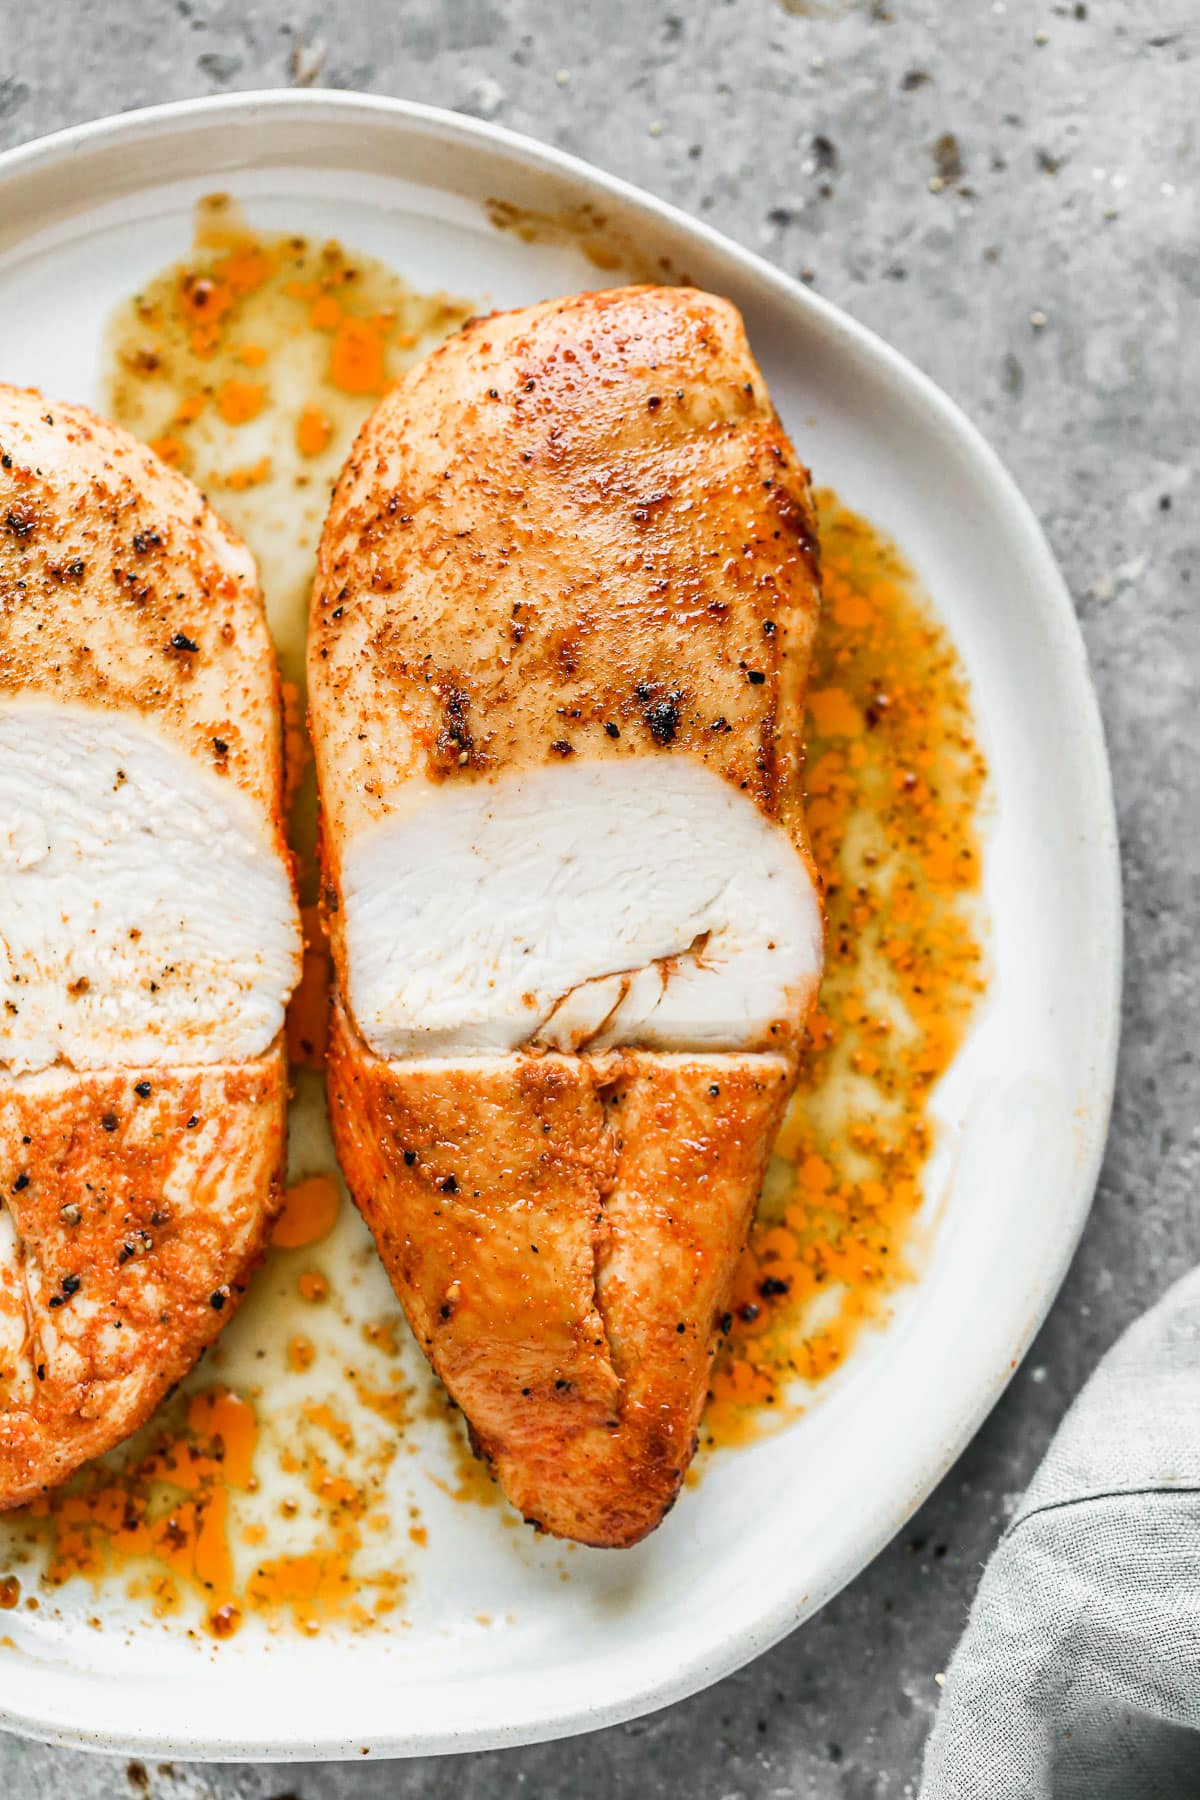 Dry Brined Baked Chicken Breast cut in half